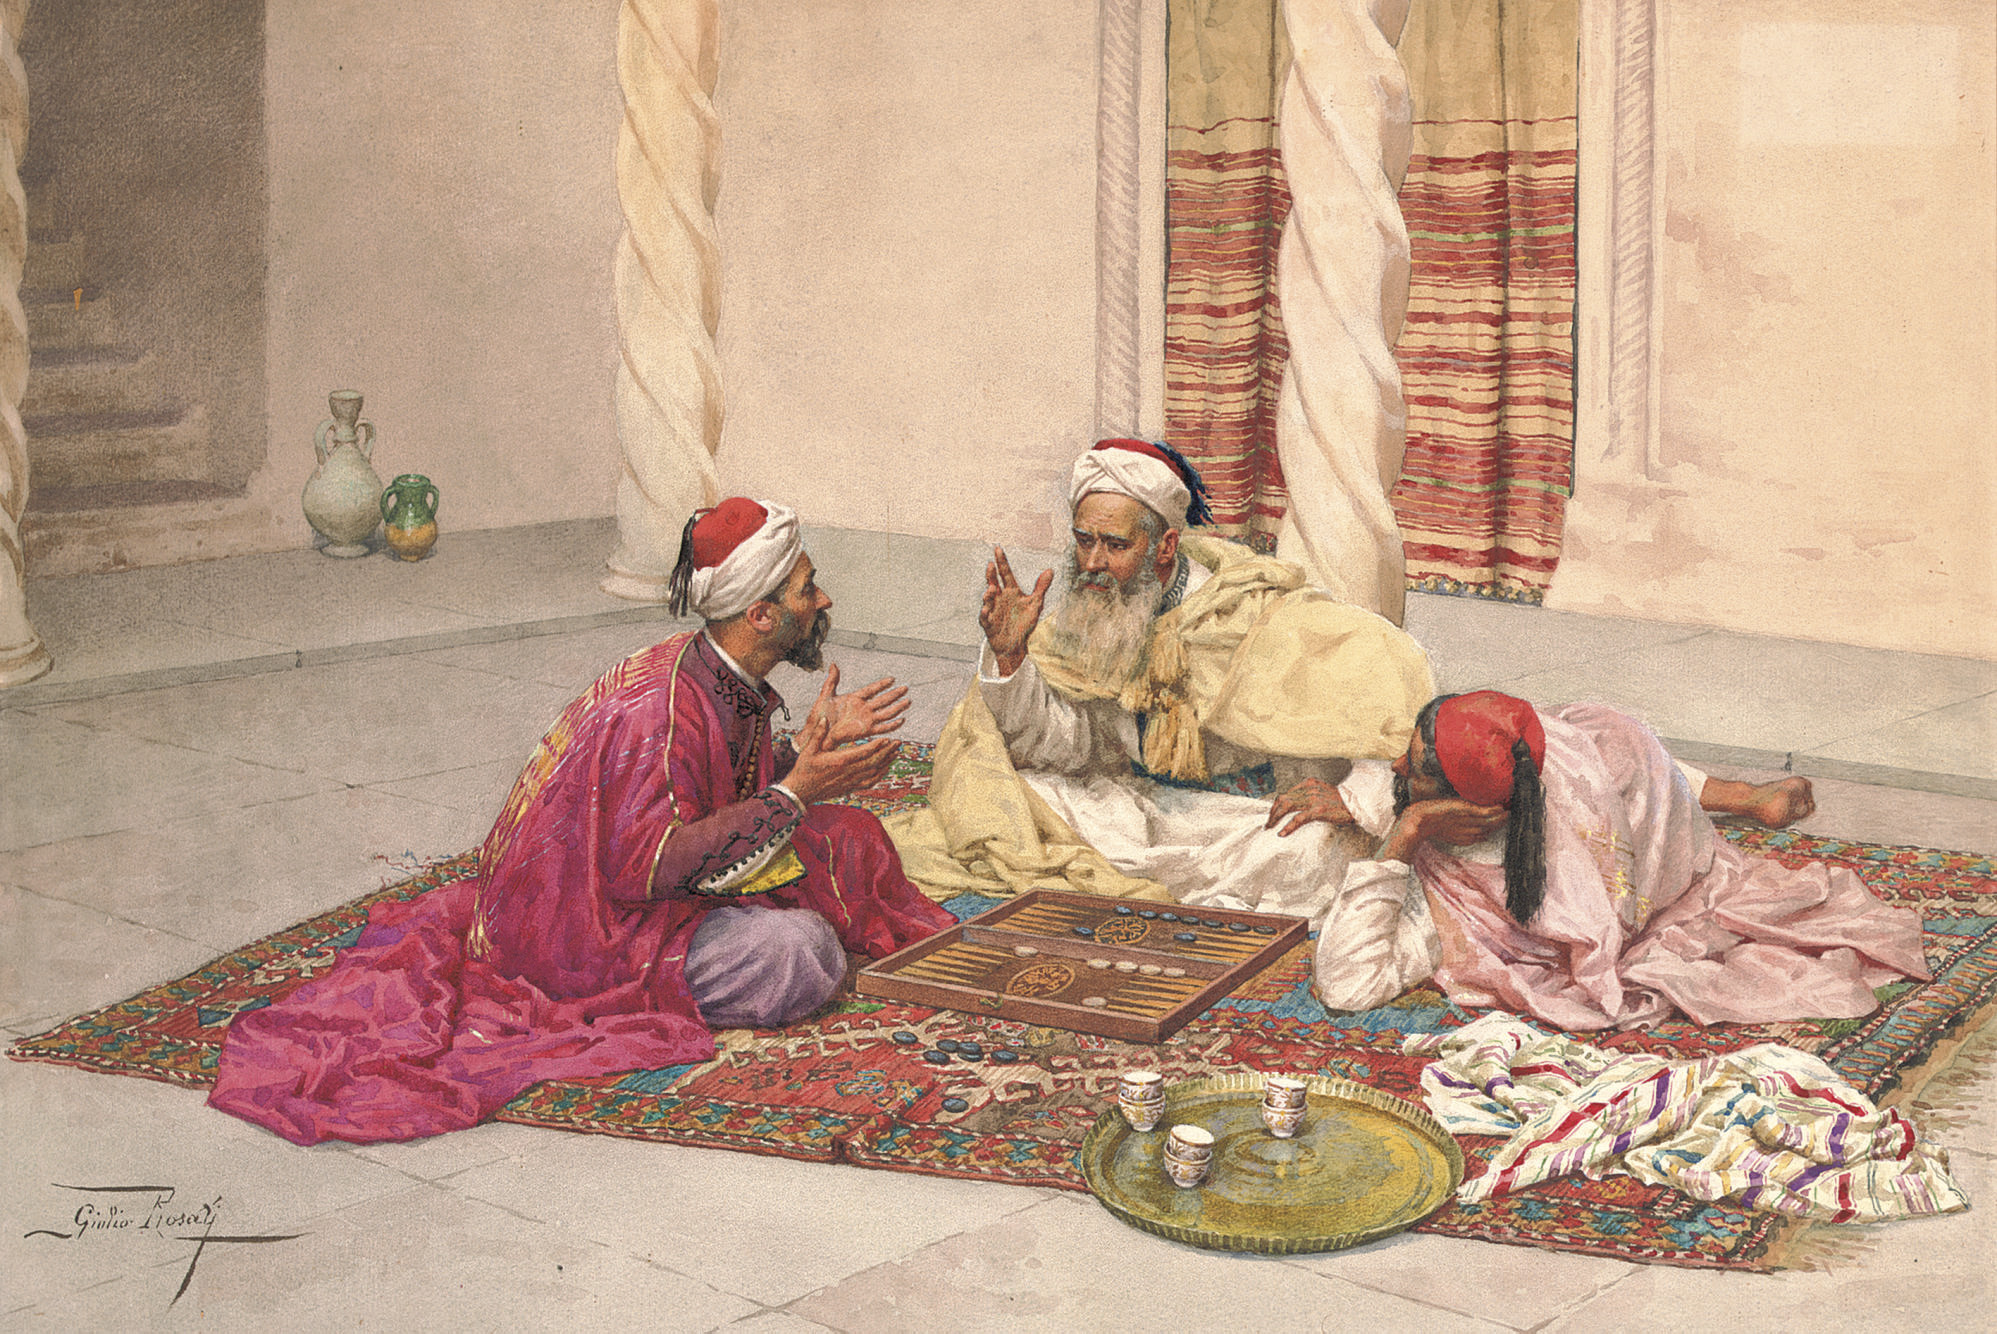 Backgammon players in a courtyard